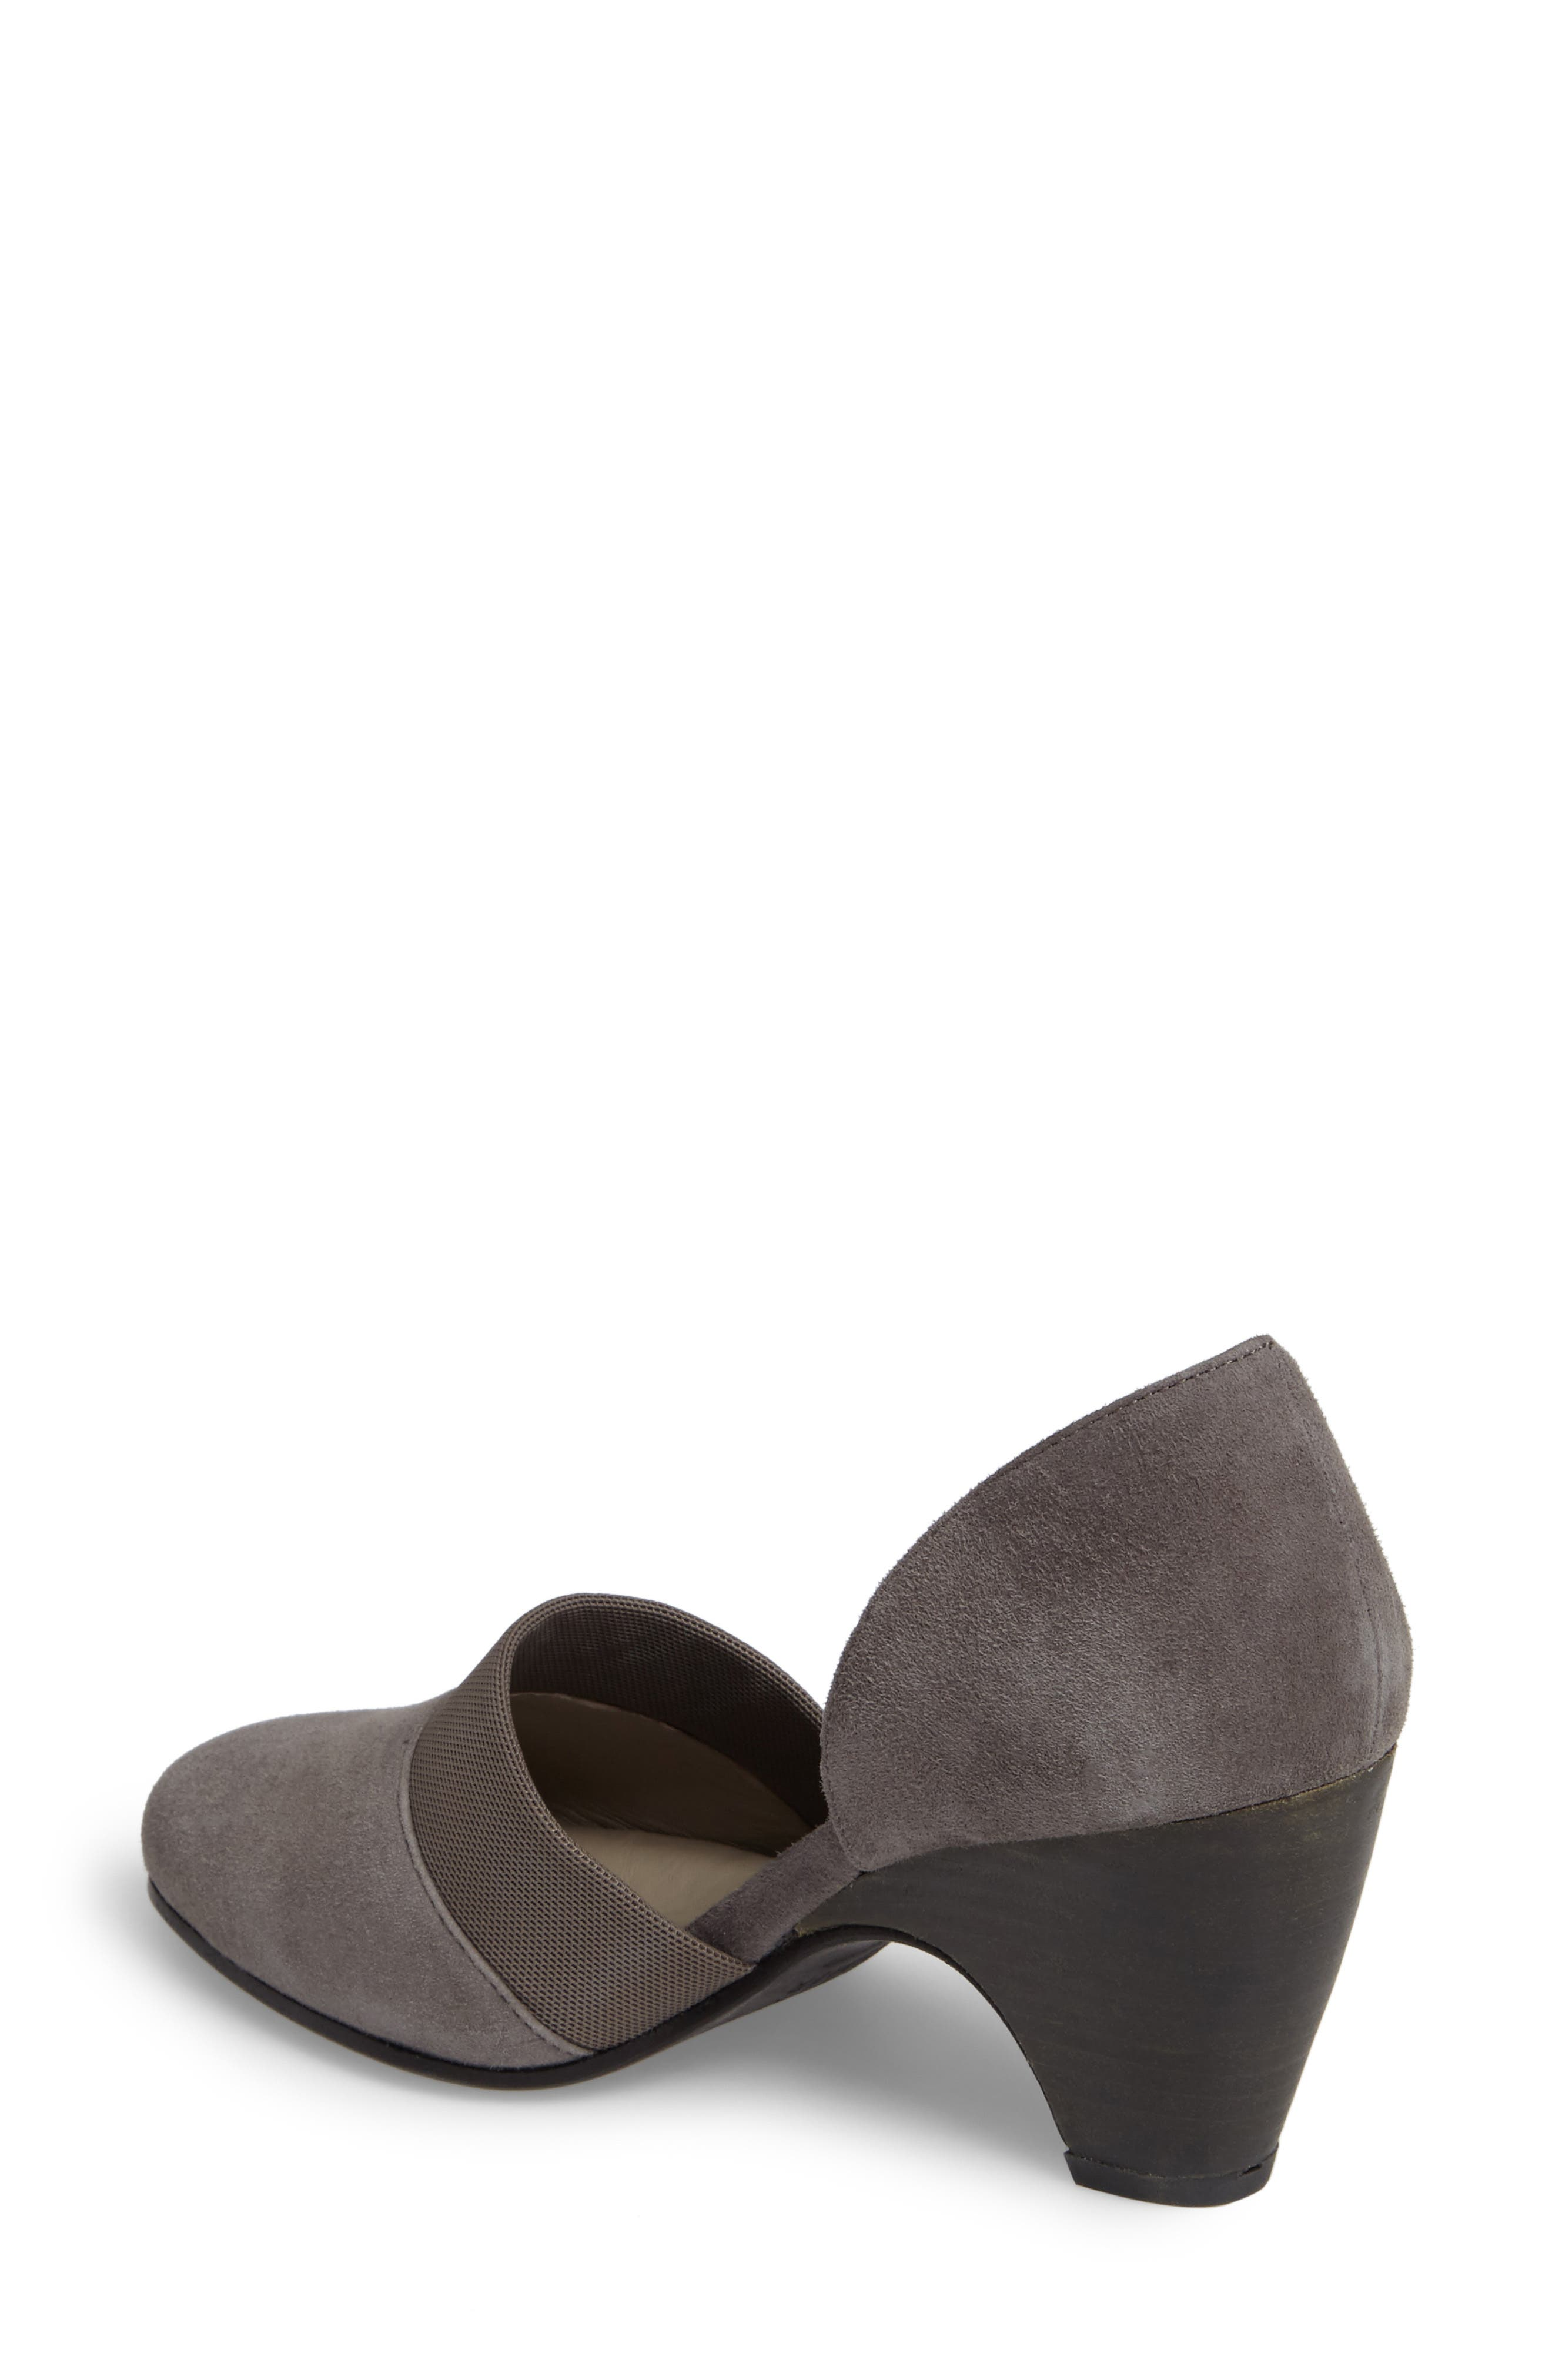 Alternate Image 2  - Eileen Fisher Bailey d'Orsay Pump (Women)